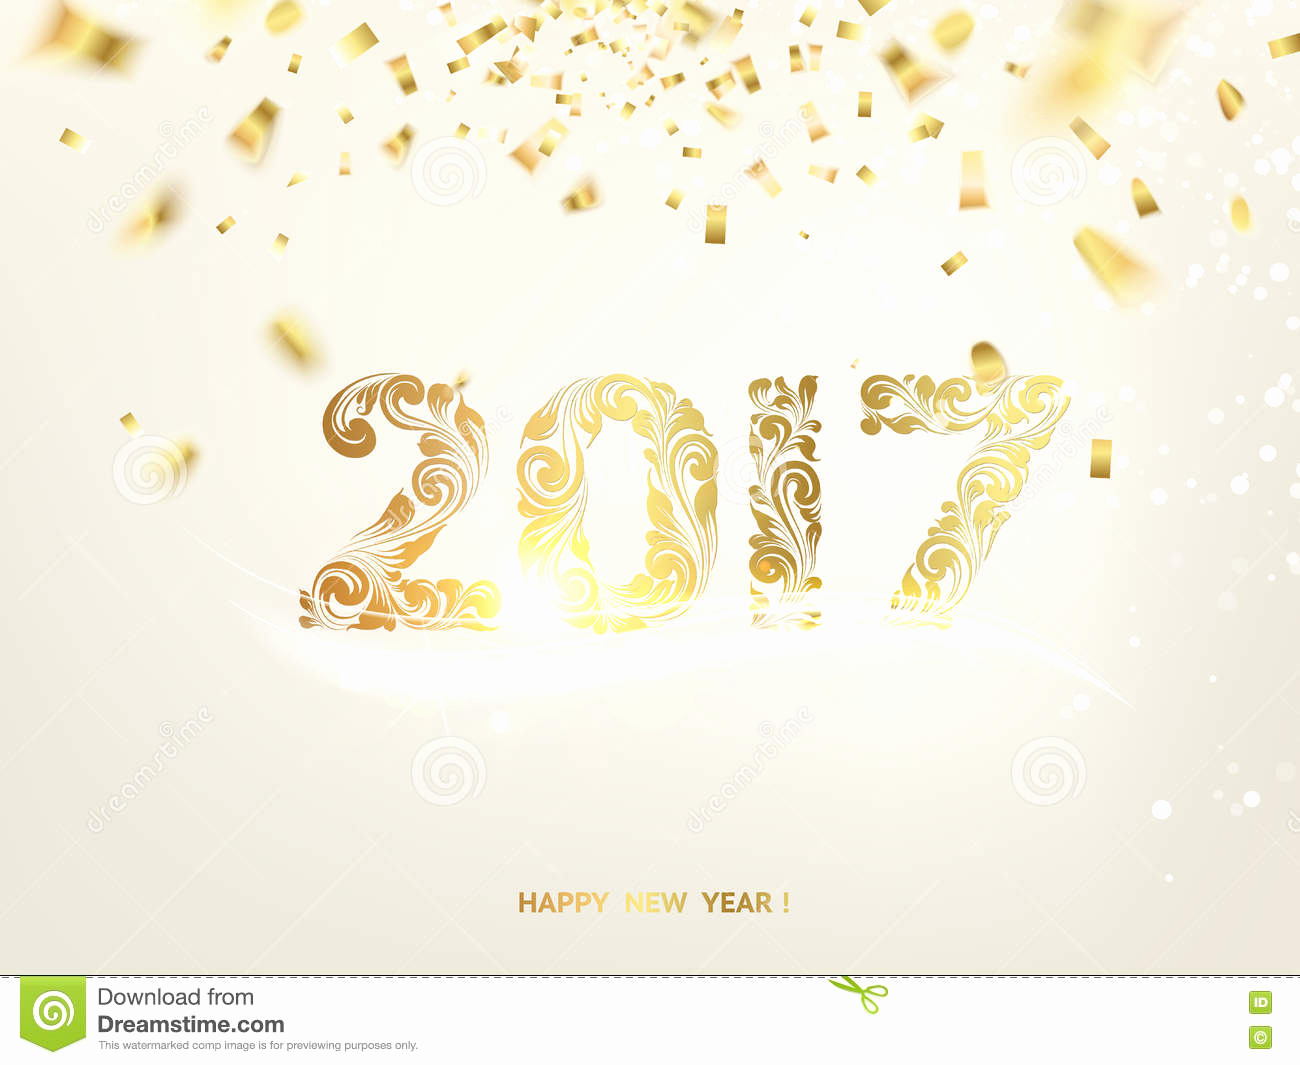 New Year Card Template Elegant Happy New Year 2017 Stock Vector Image Of Glowing